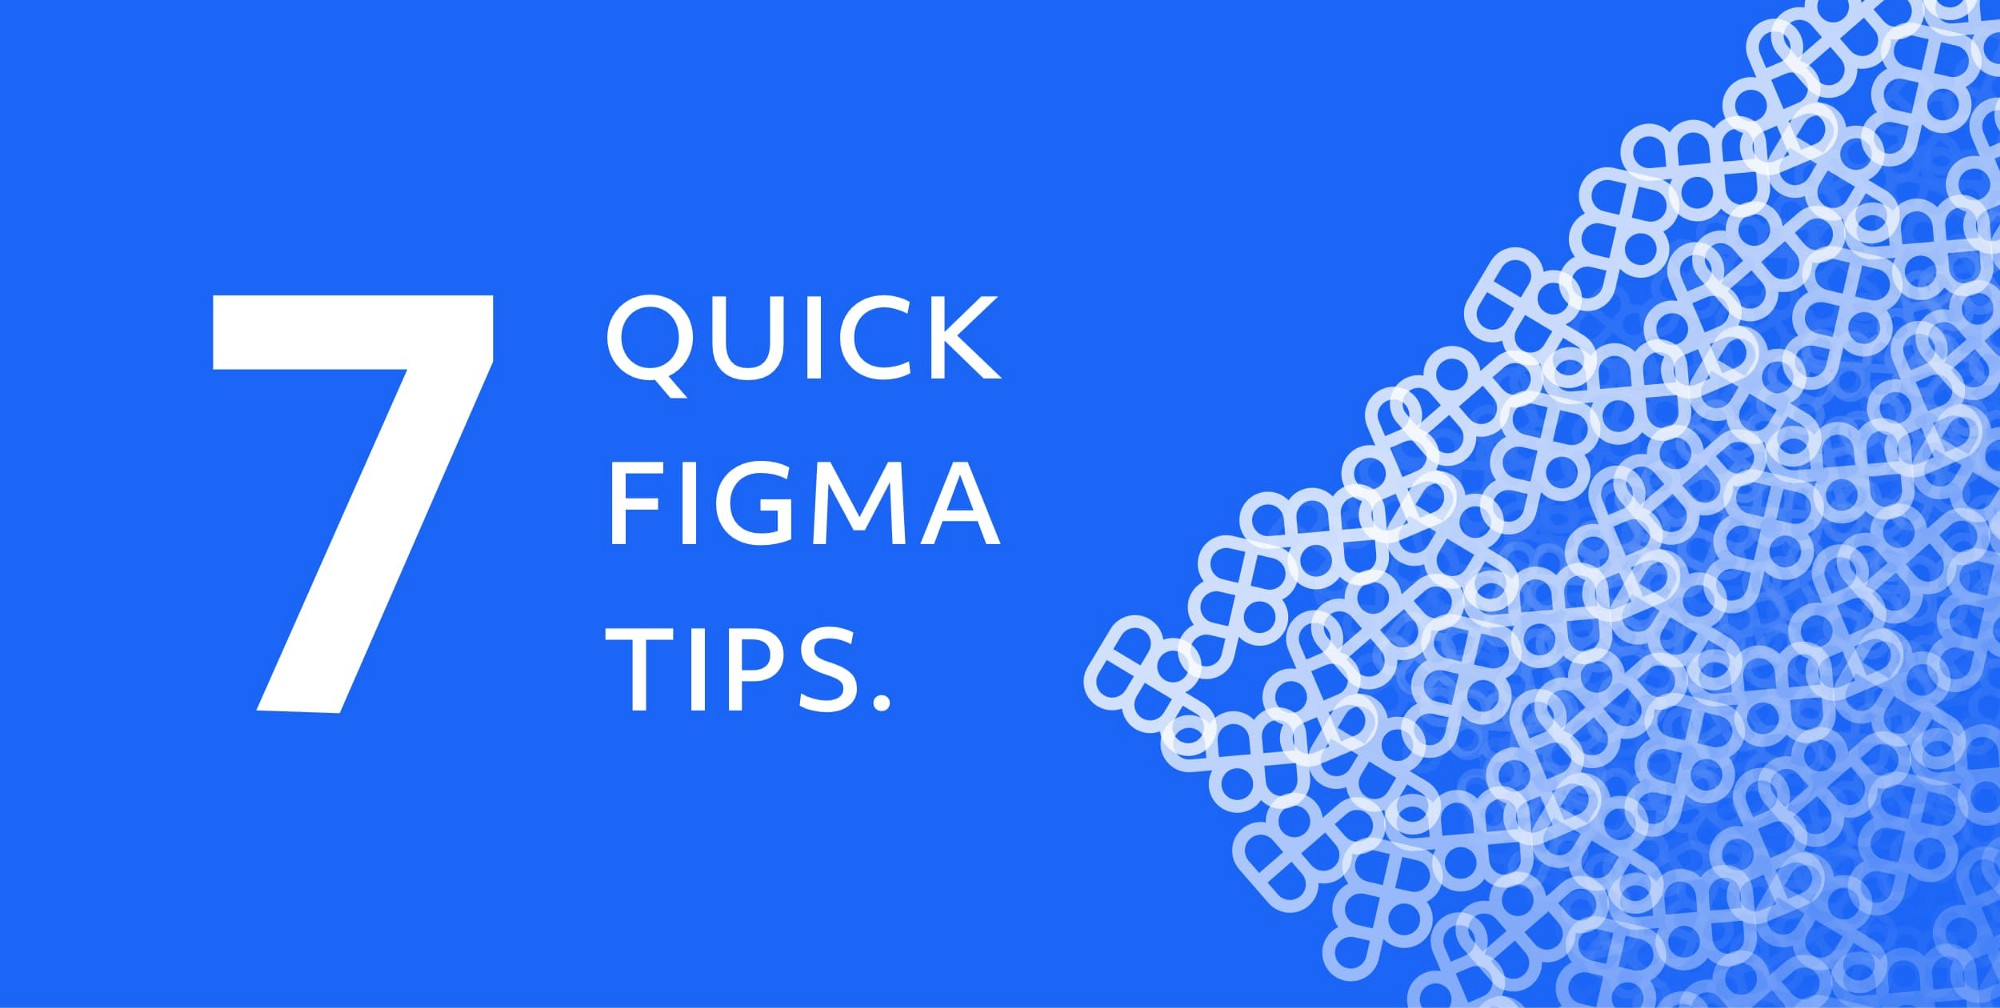 The words '7 quick figma tips' in white, on a blue background